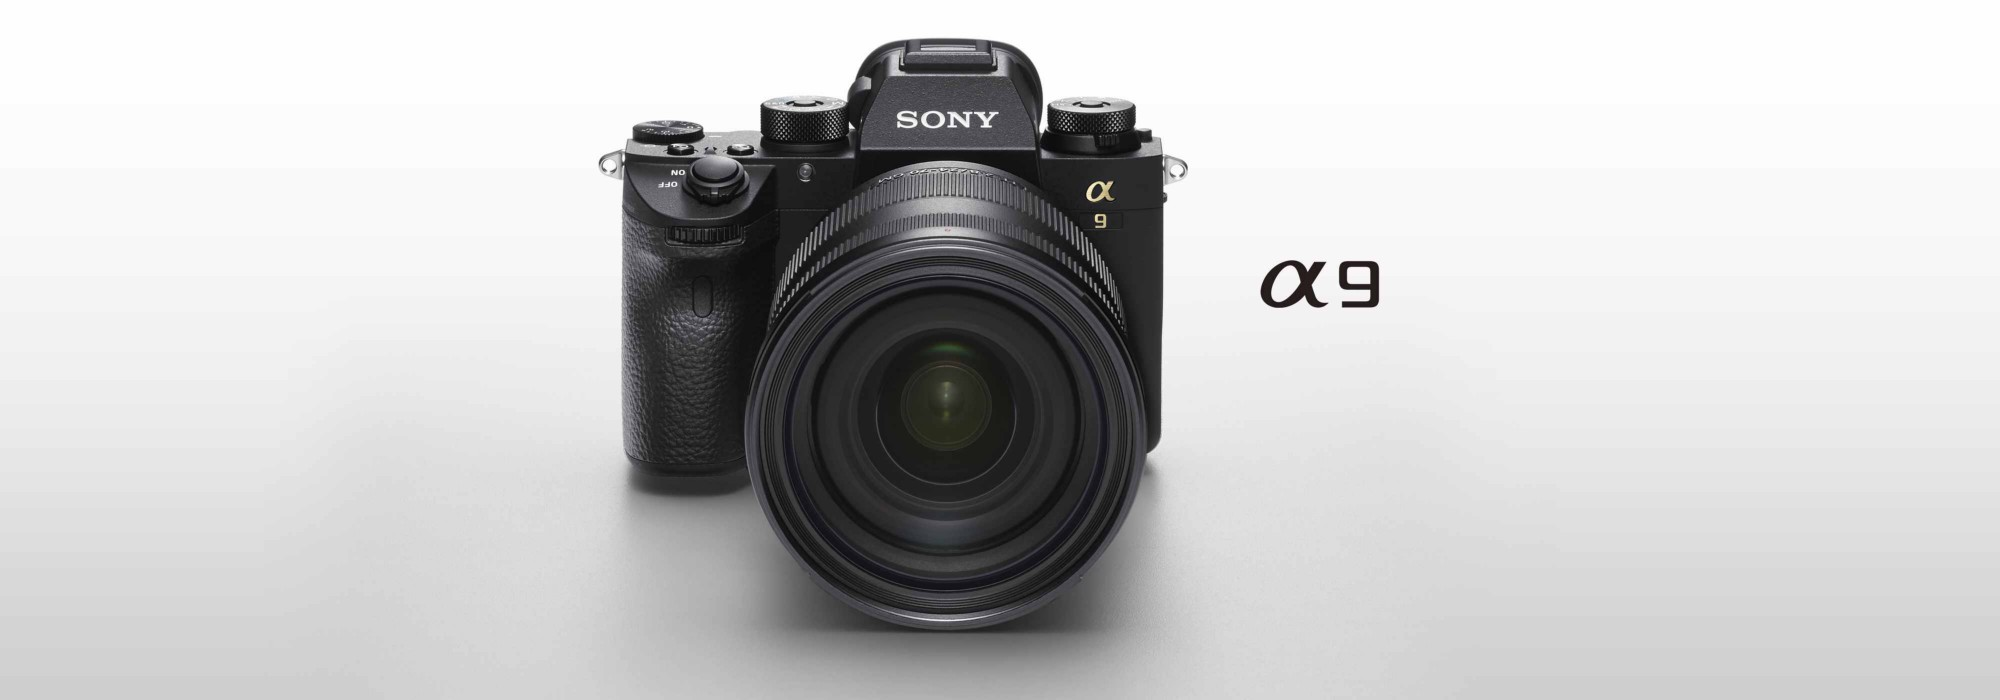 Sony a9 is a 4K mirrorless full-frame camera with touchscreen